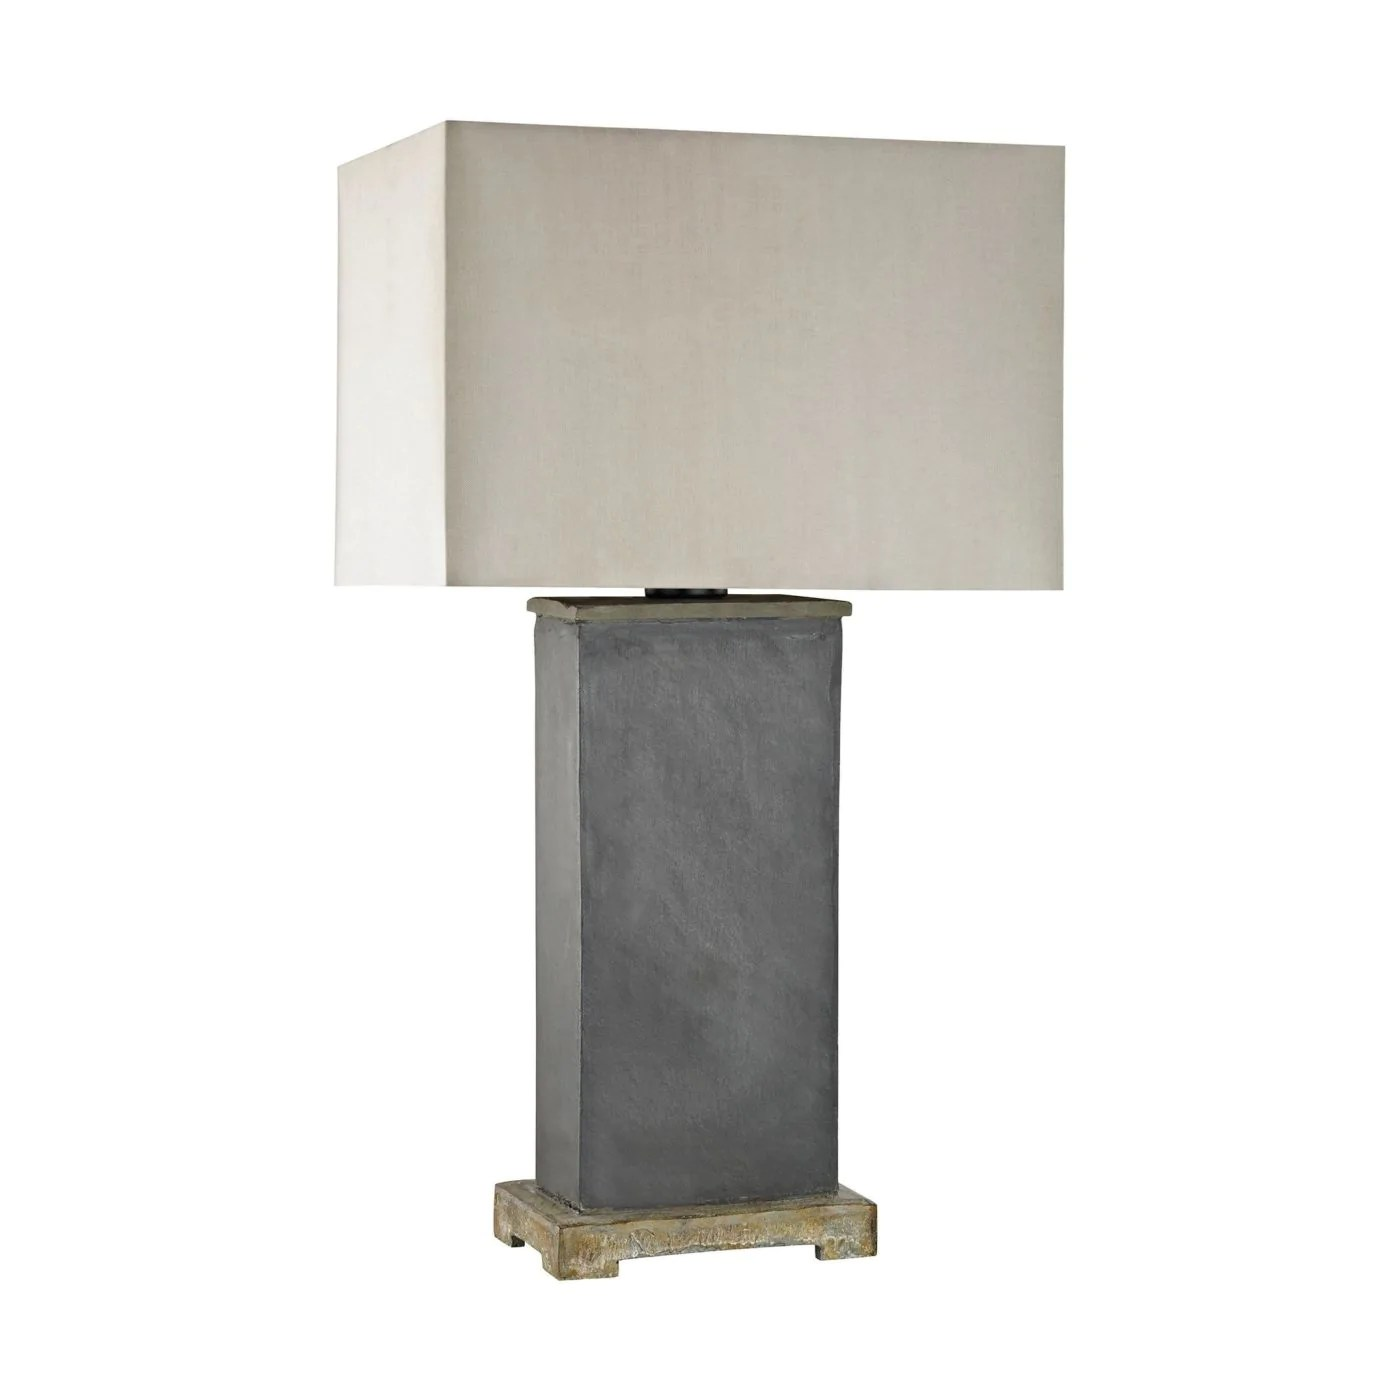 Outdoor Lamps Elliot Bay Outdoor Table Lamp Grey Slate